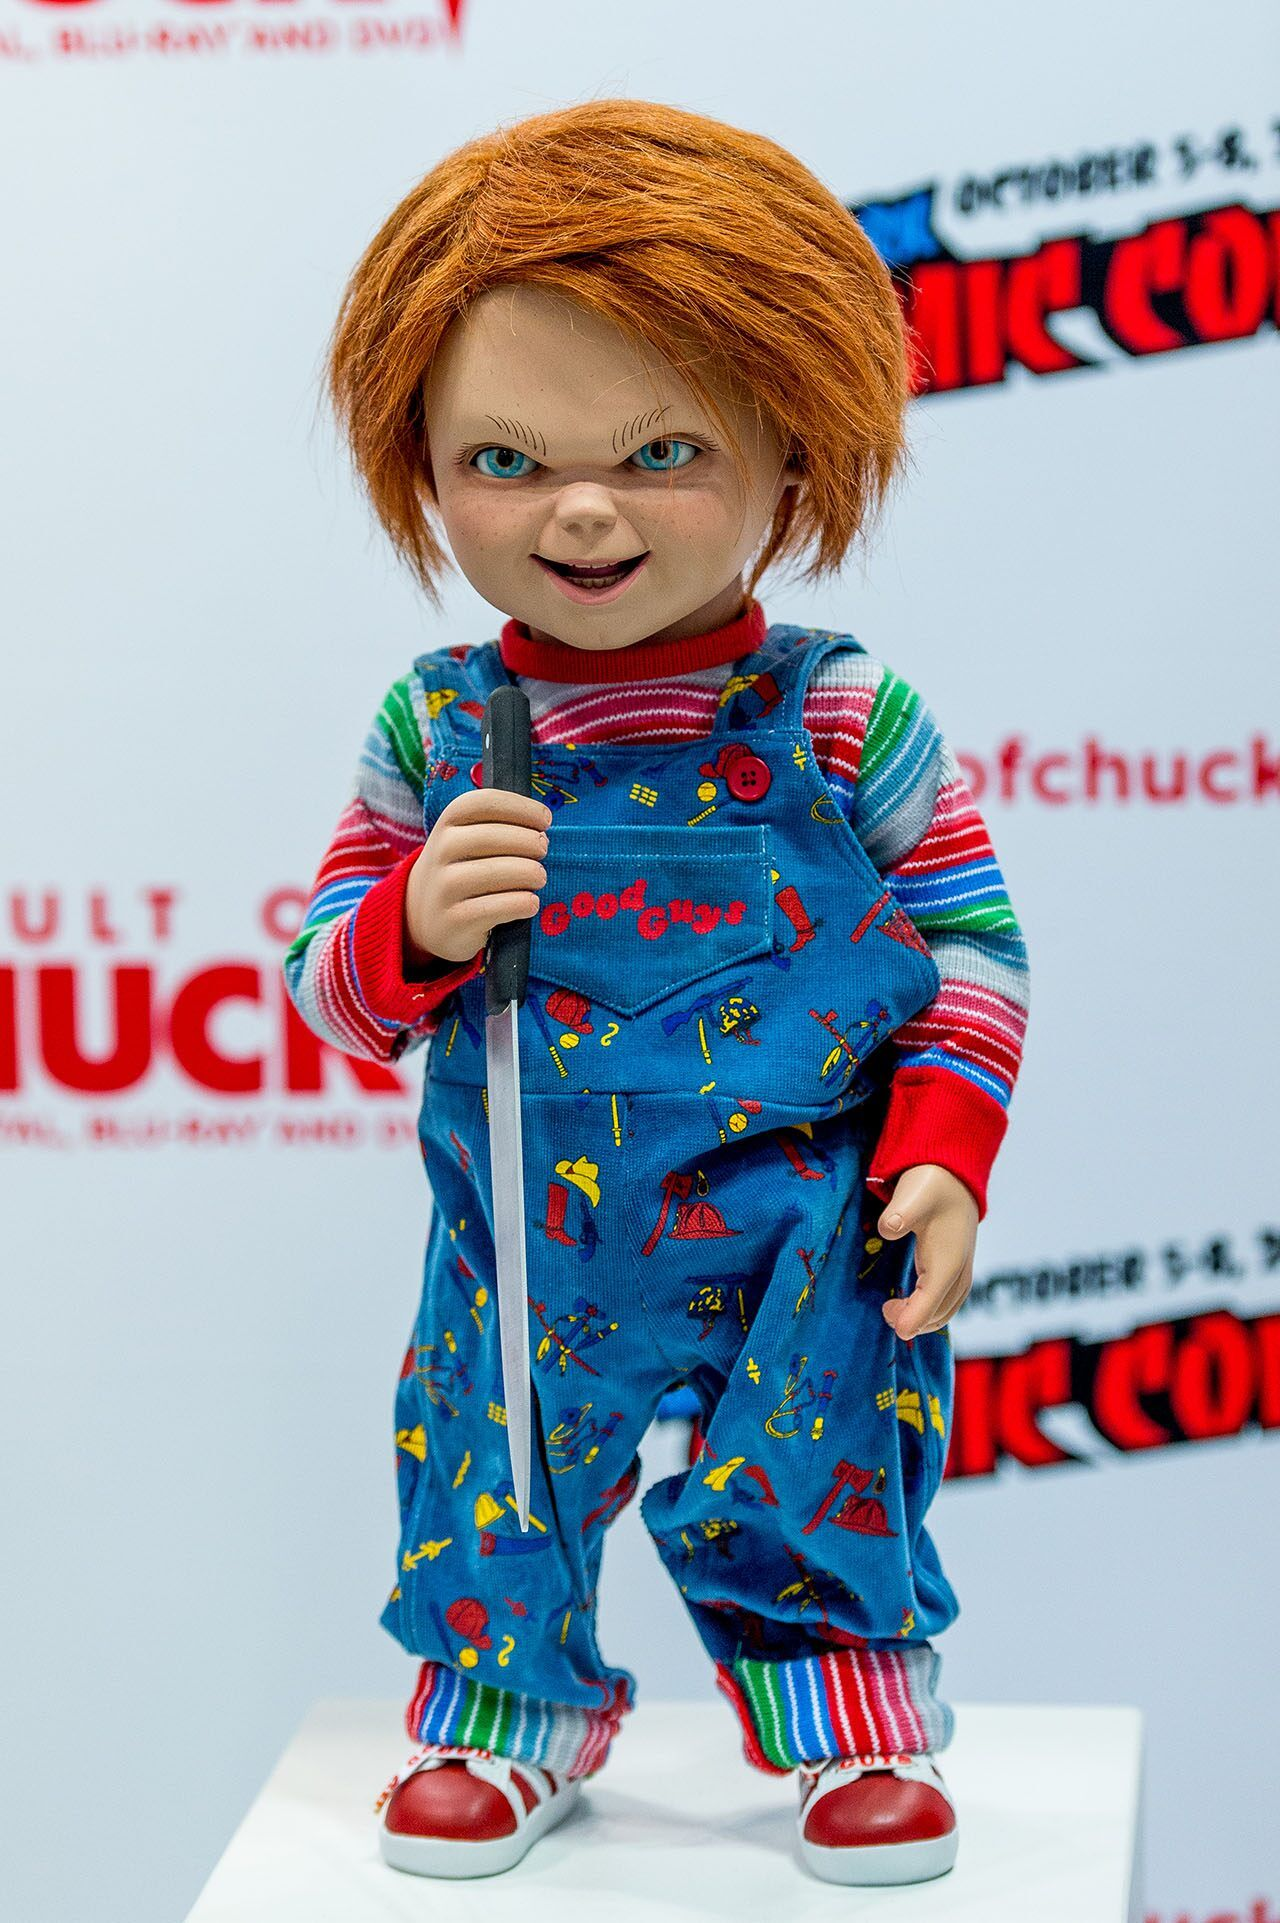 French bulldog's Chucky Halloween costume goes viral, gets